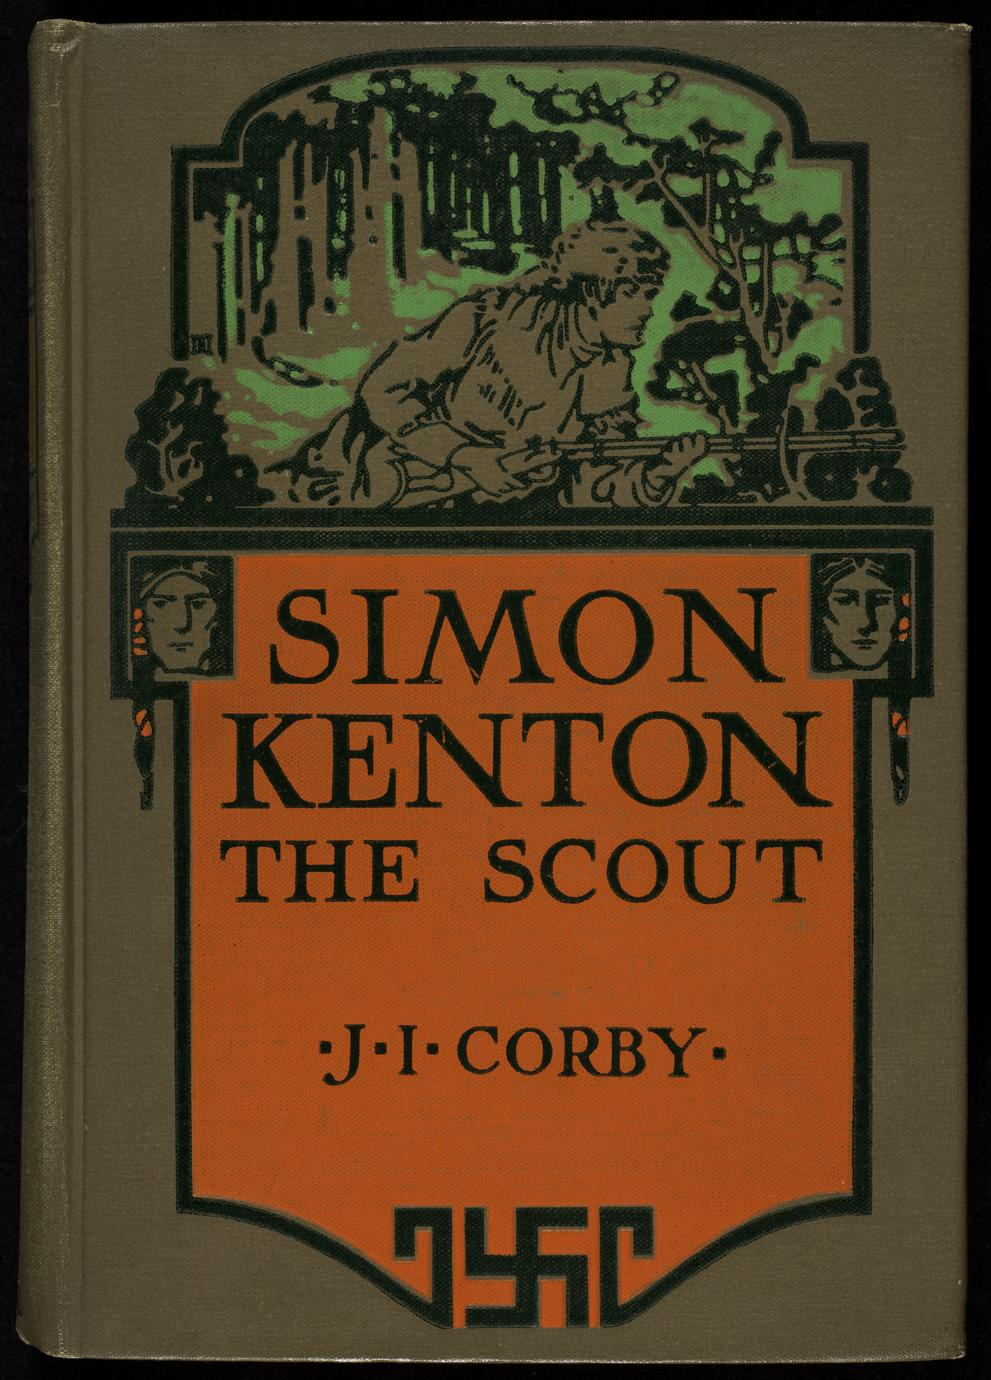 Simon Kenton, the scout : a tale of frontier life during the revolution (1 of 3)